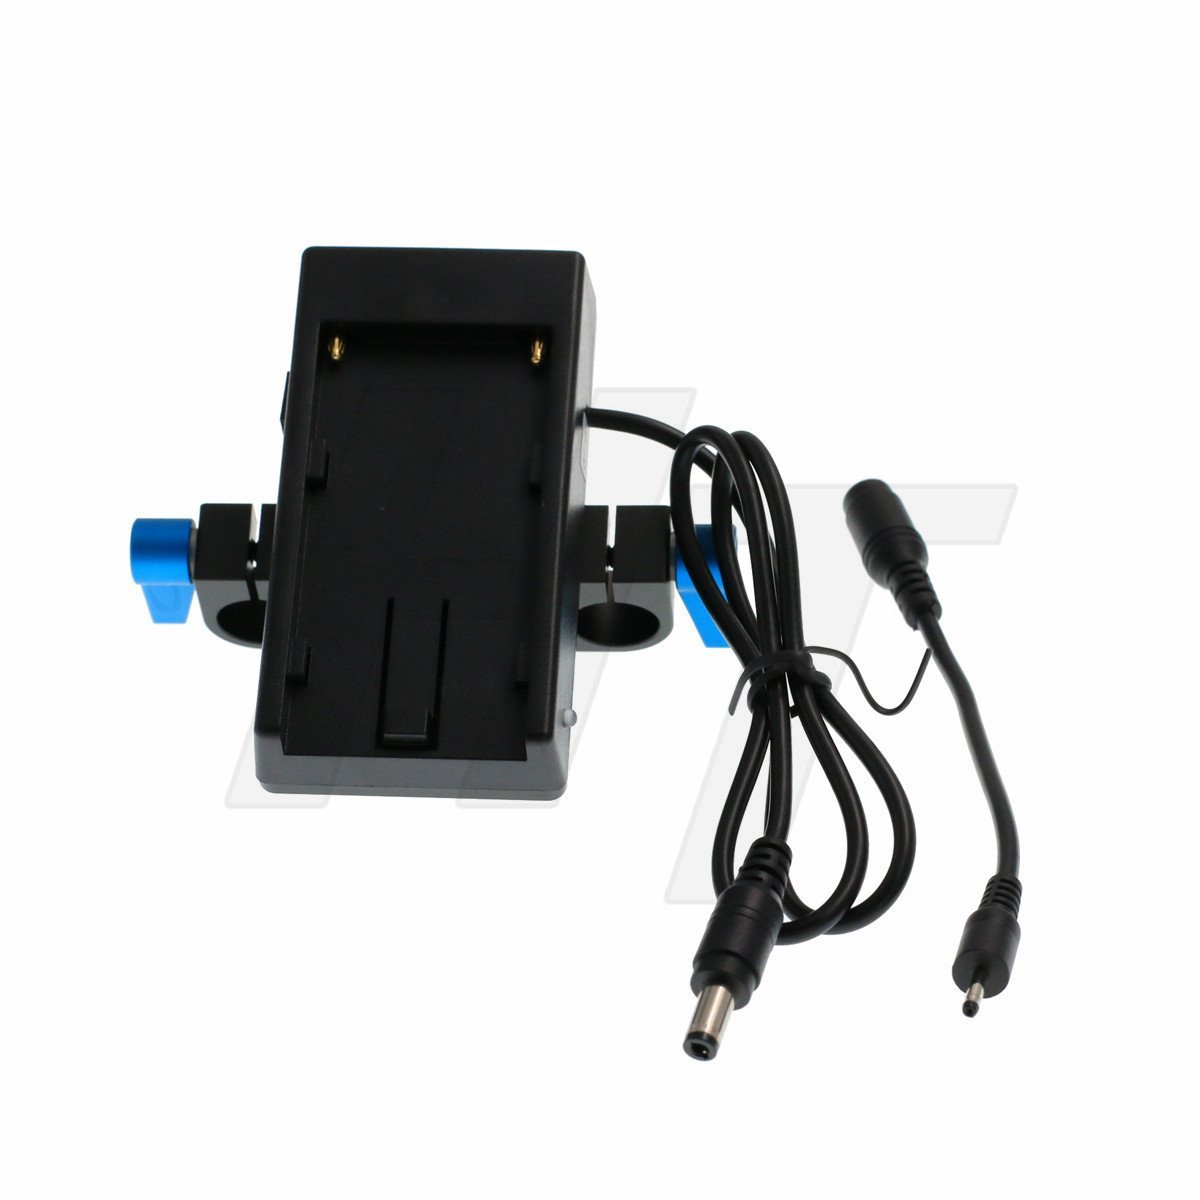 HangTon Power Station NP-F970 770 Battery Mount Plate 12V DC for Camera Monitor(with 15mm Rod clamp) by HangTon Connect